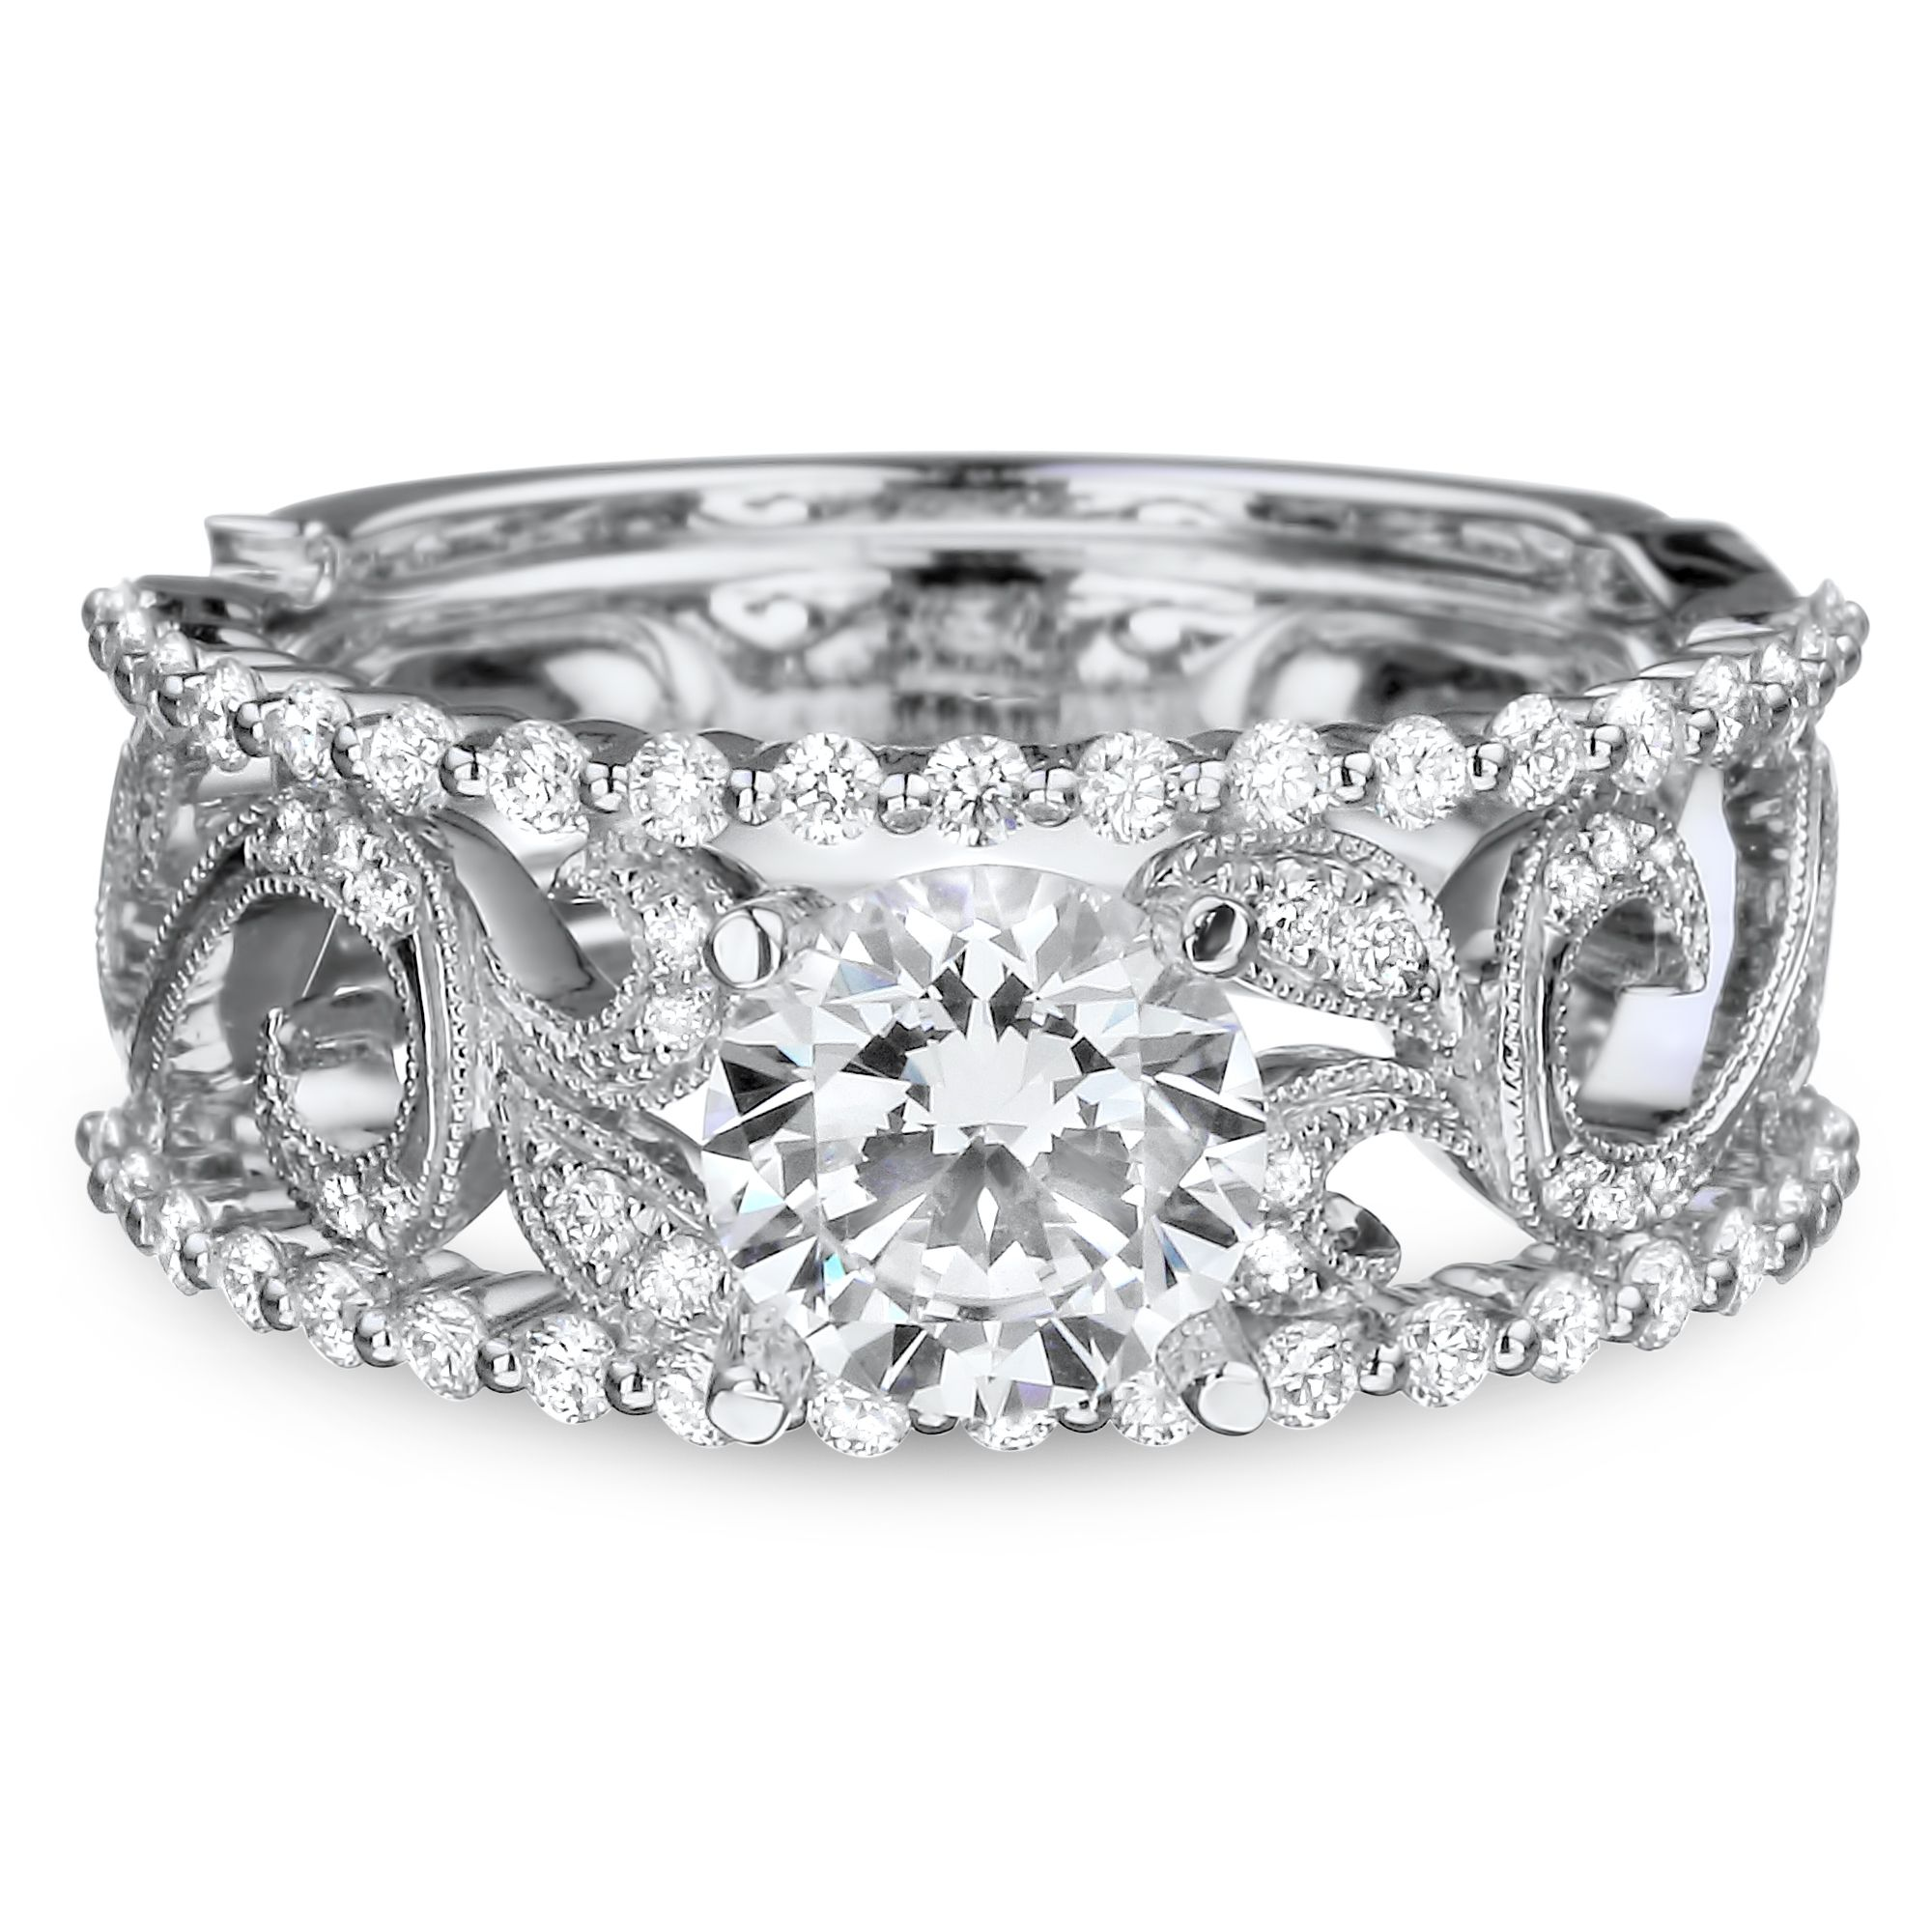 band diamond rings ring lane filigree neil the enlarged products jewelry bands realreal